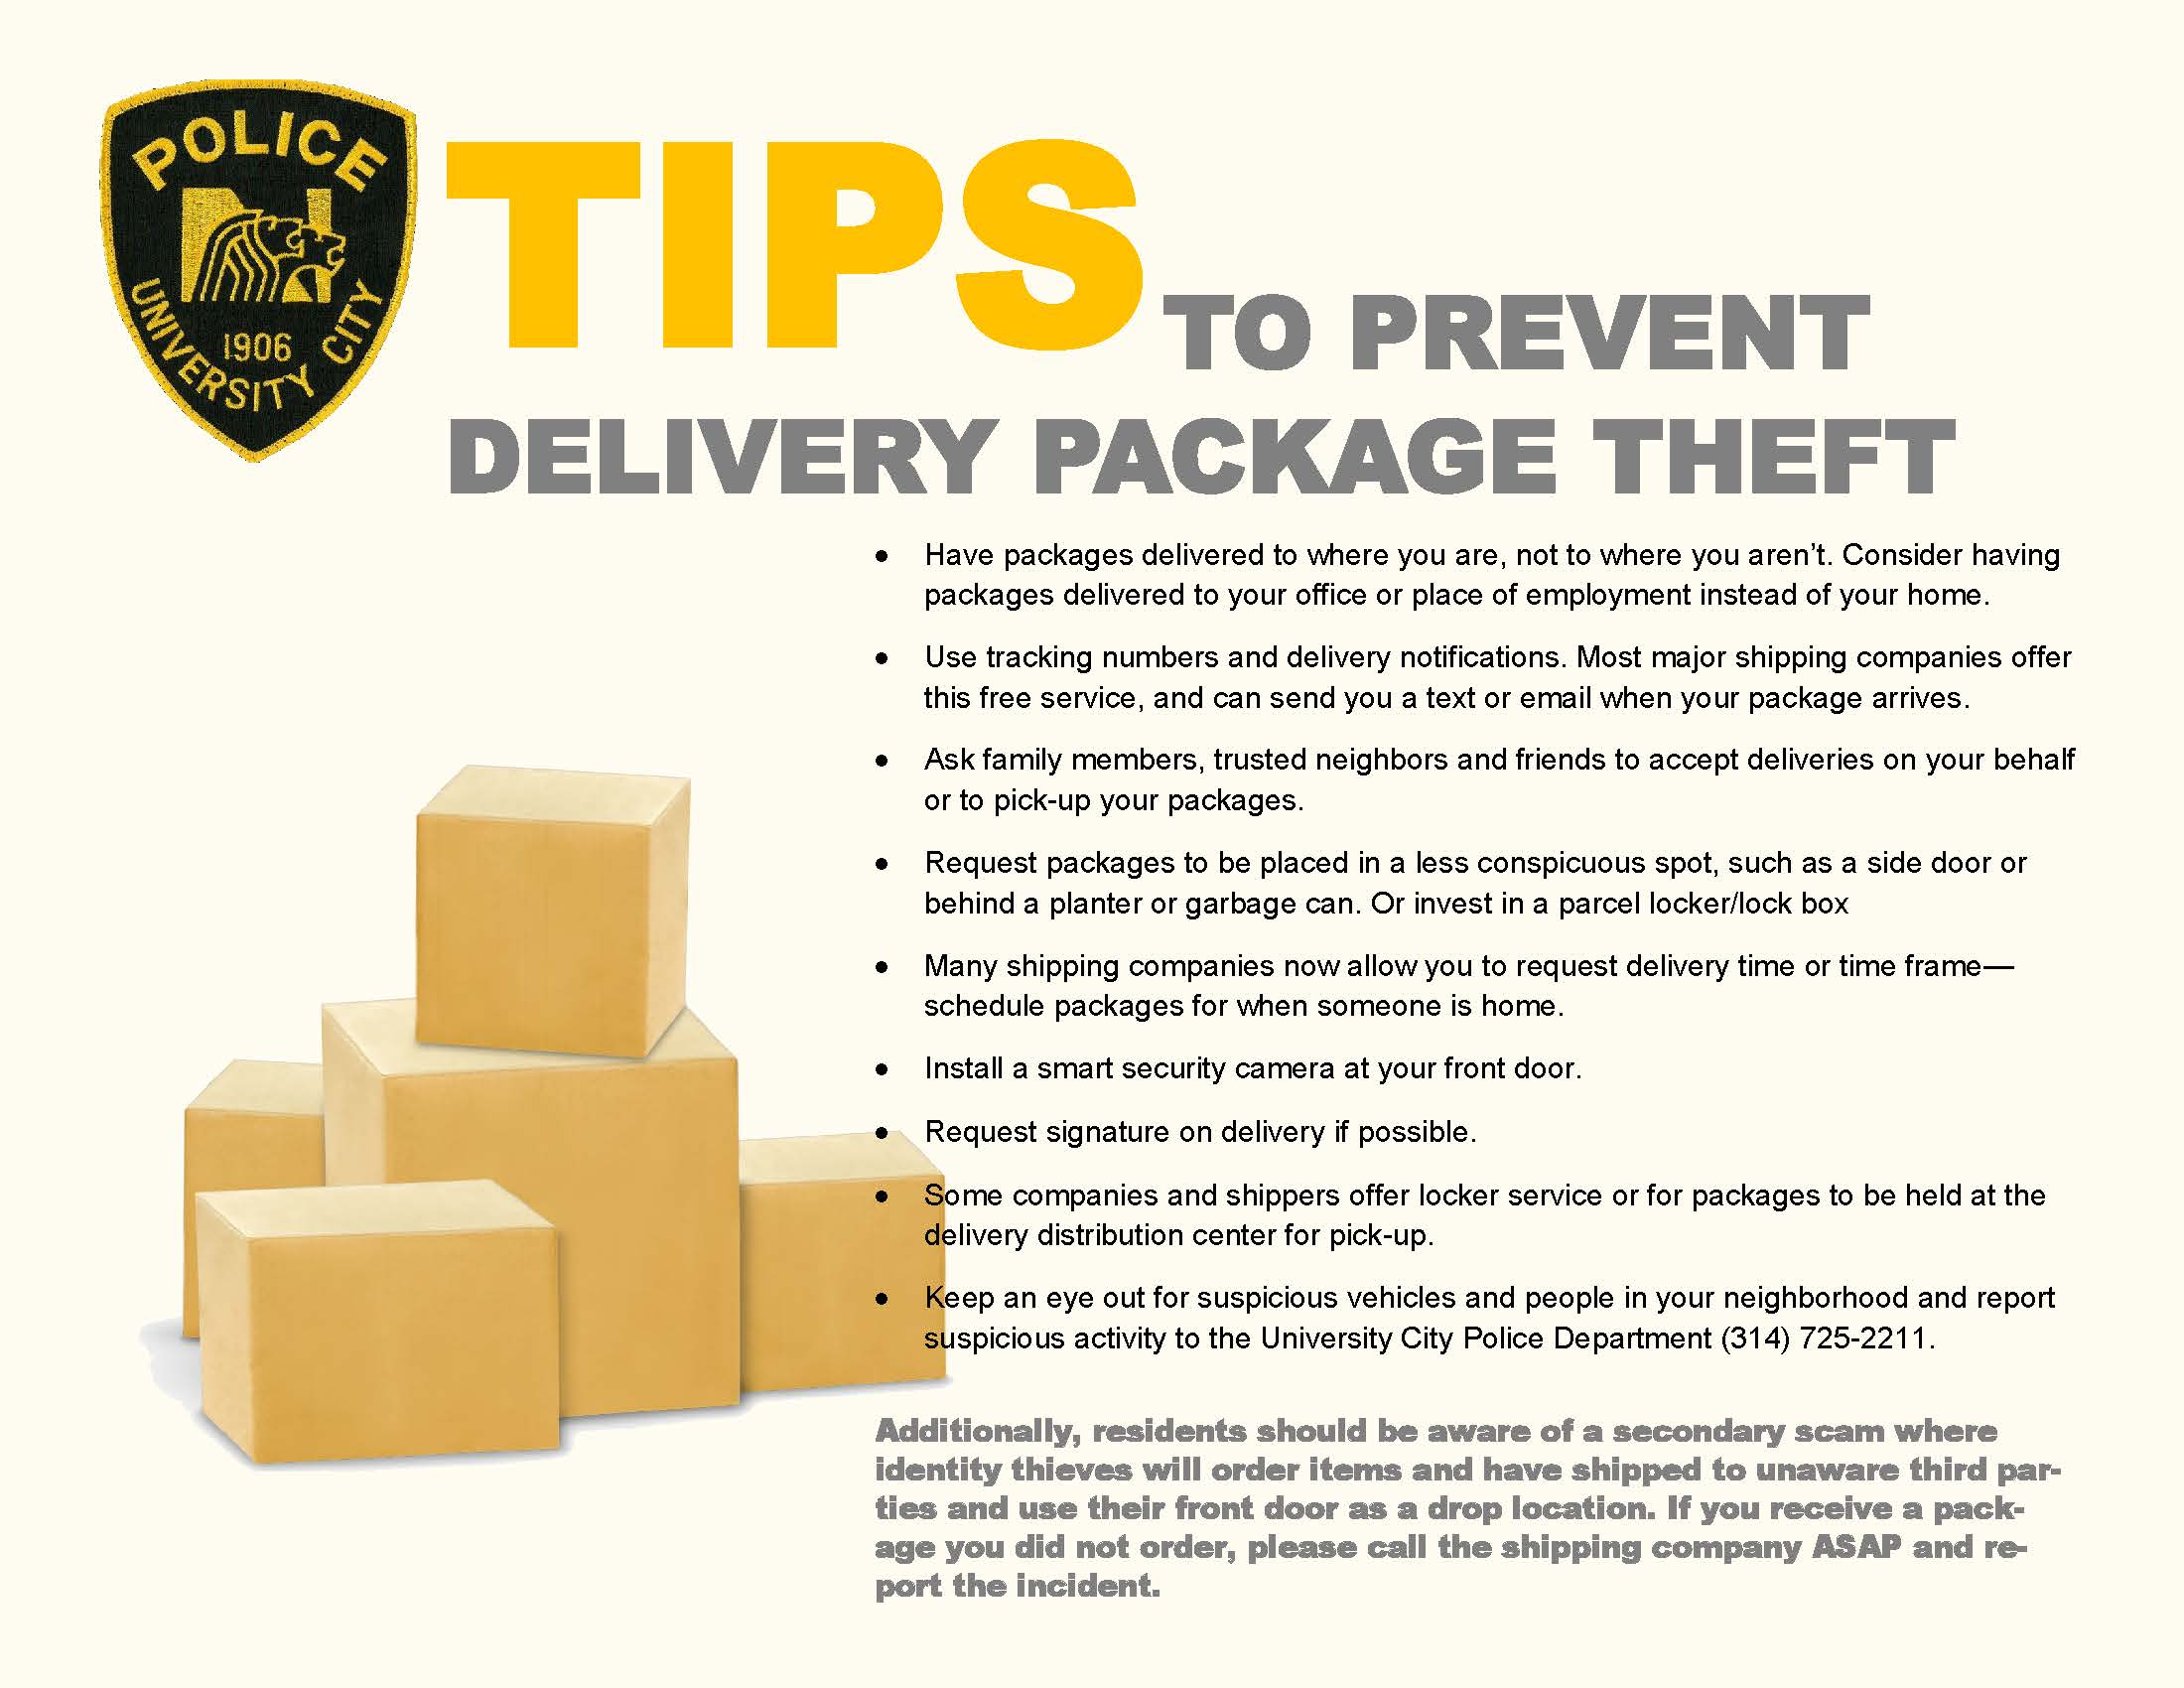 Prevent Delivery Package Theft